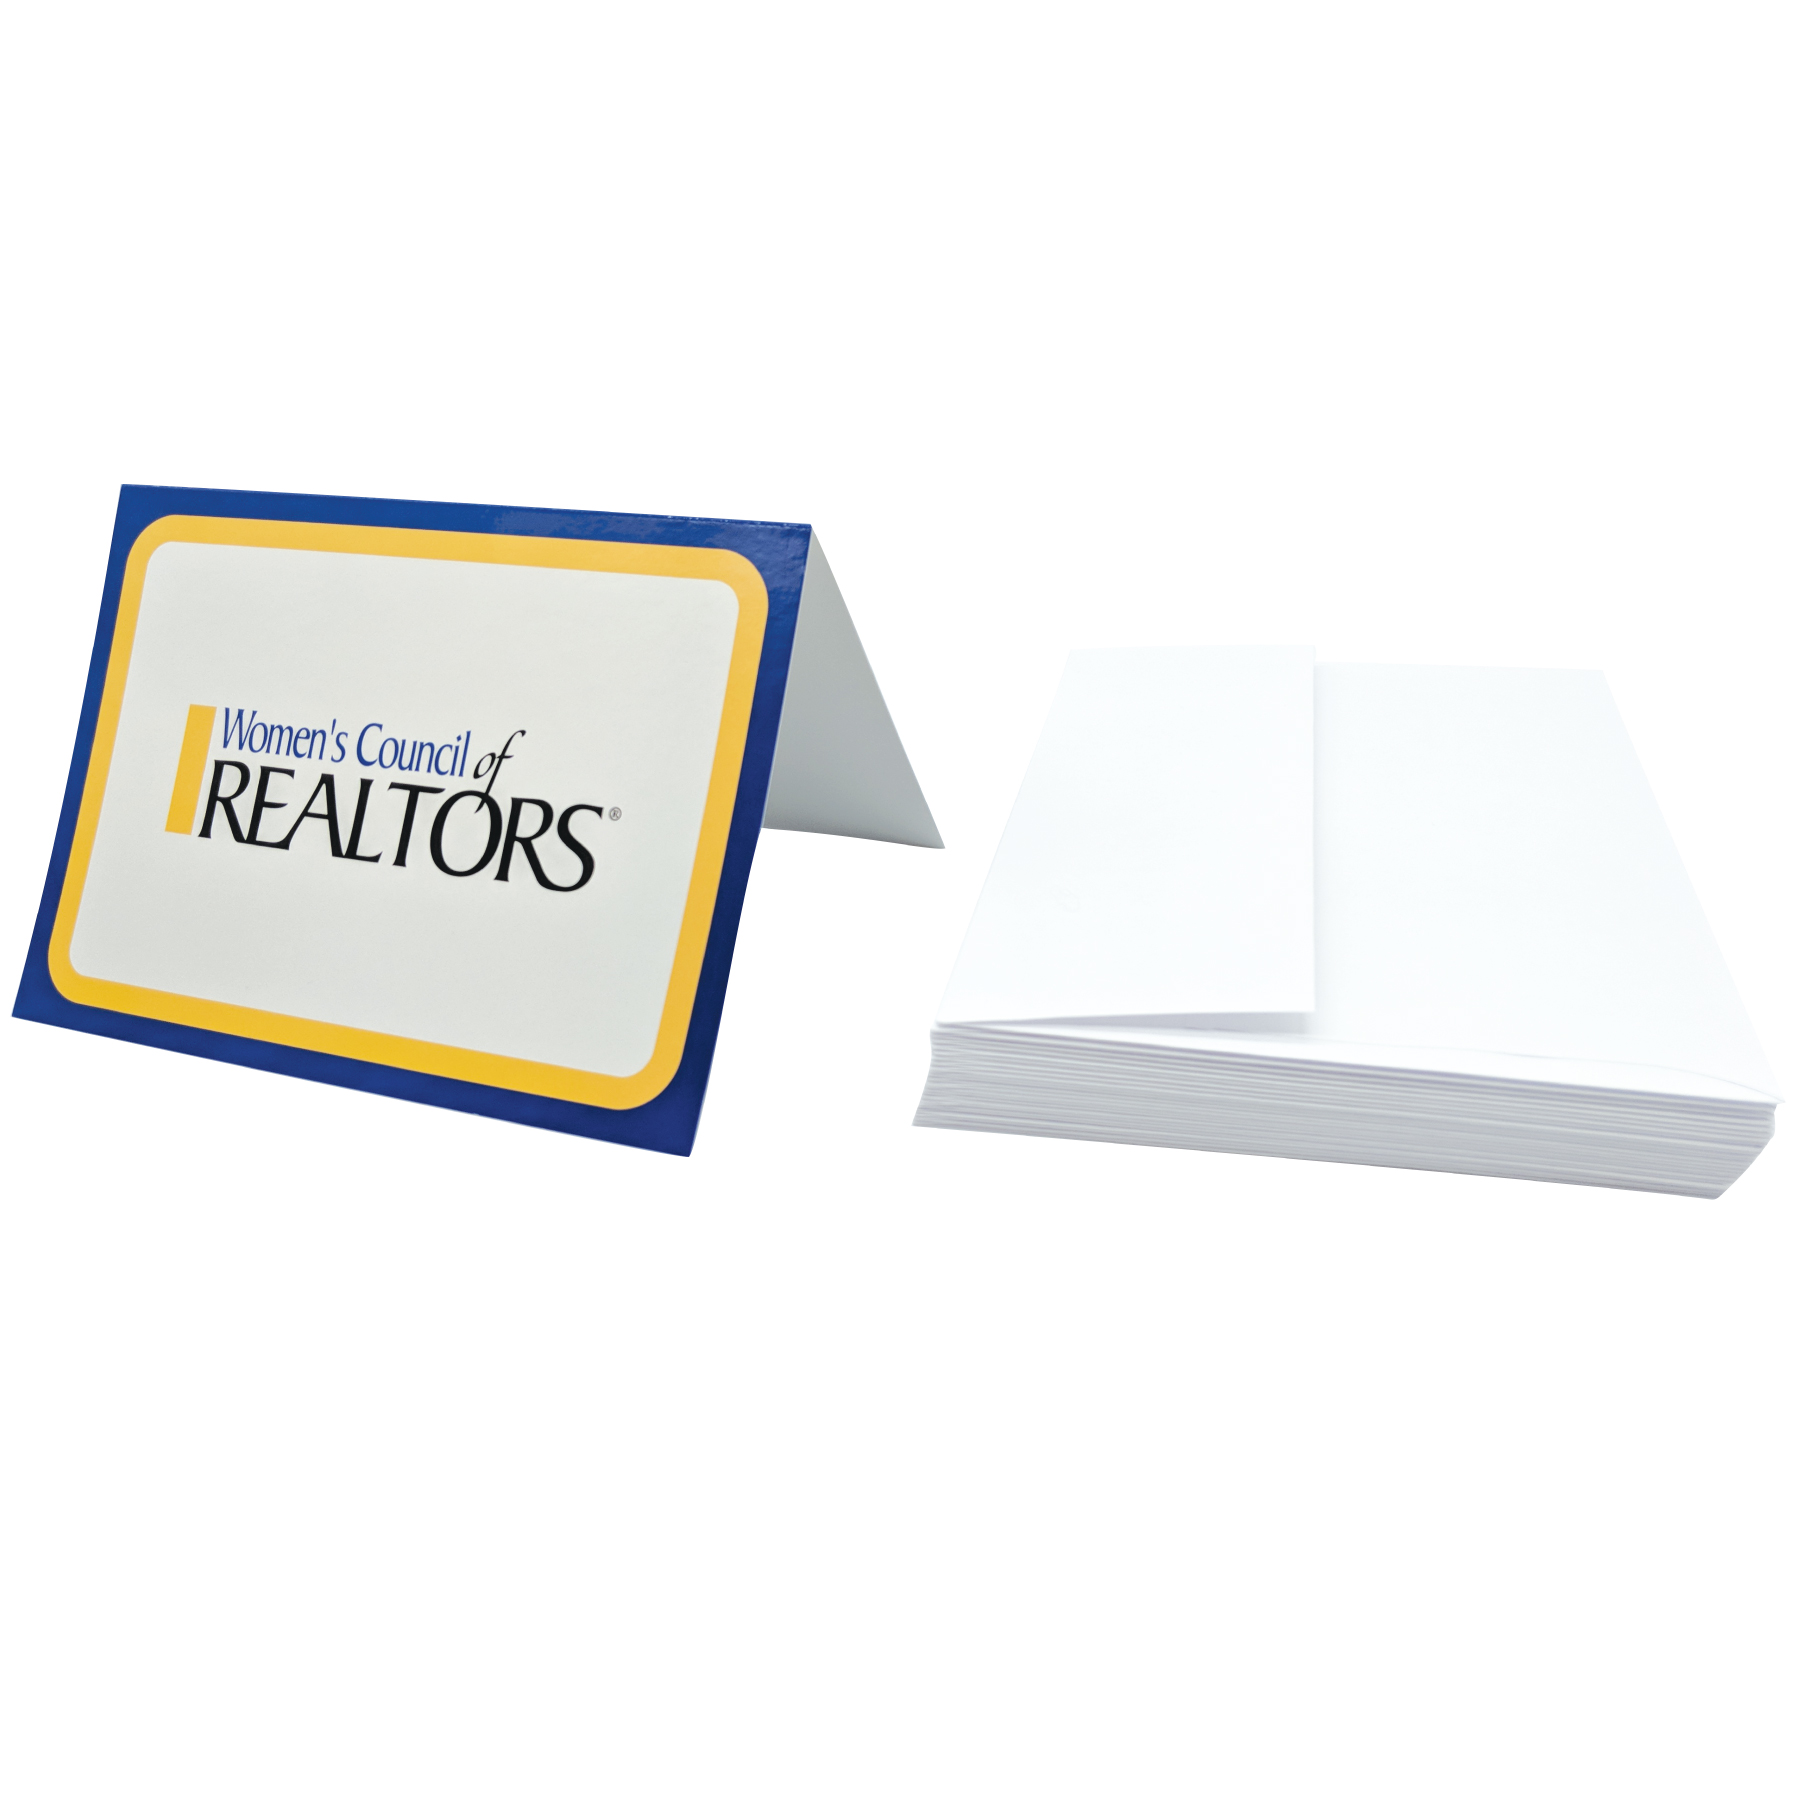 WCR Notecard/Greeting Card Set notes,Cards,notescards,notecard,note,card,greeting,folded,sets, WCR4121,greetings,mailings